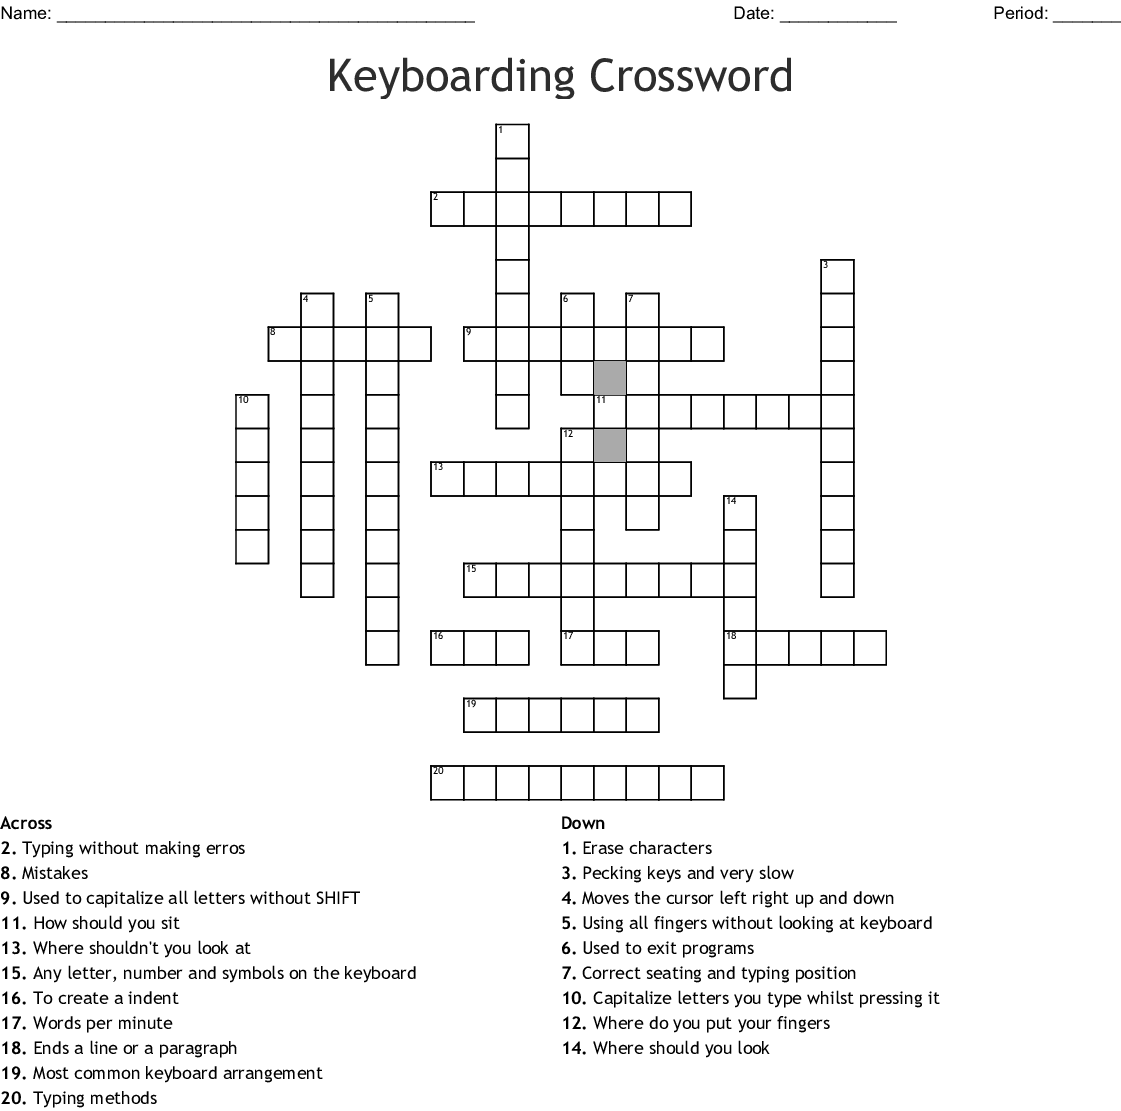 Keyboarding Crossword - WordMint